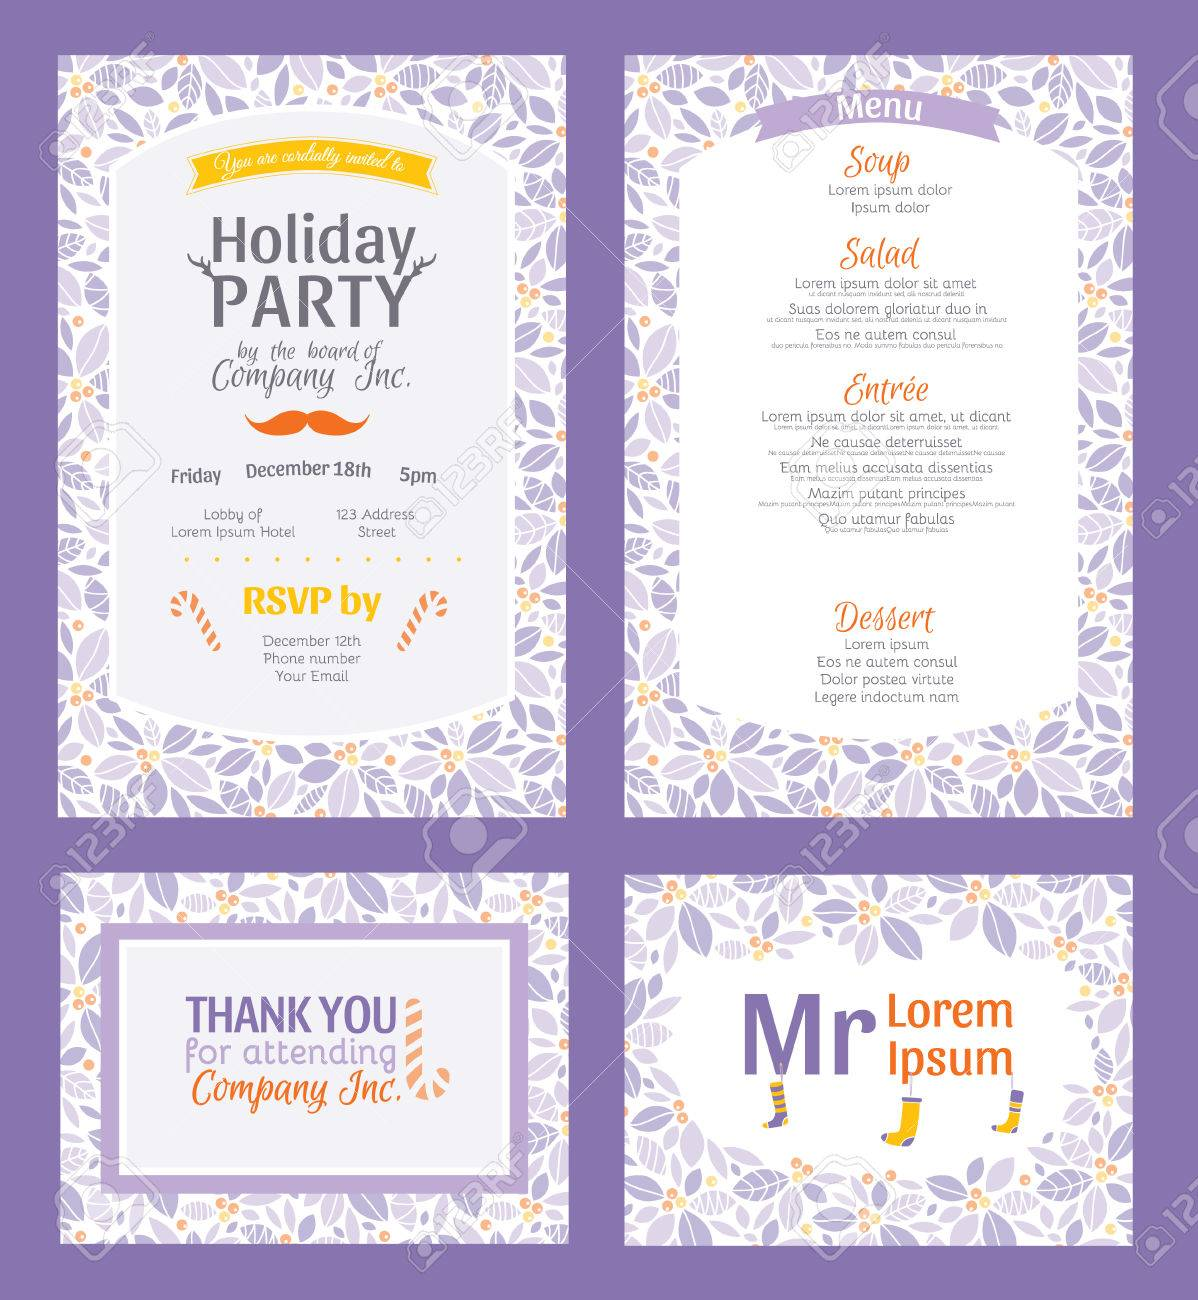 company party invitation 17 best images about christmas party – Company Party Invitation